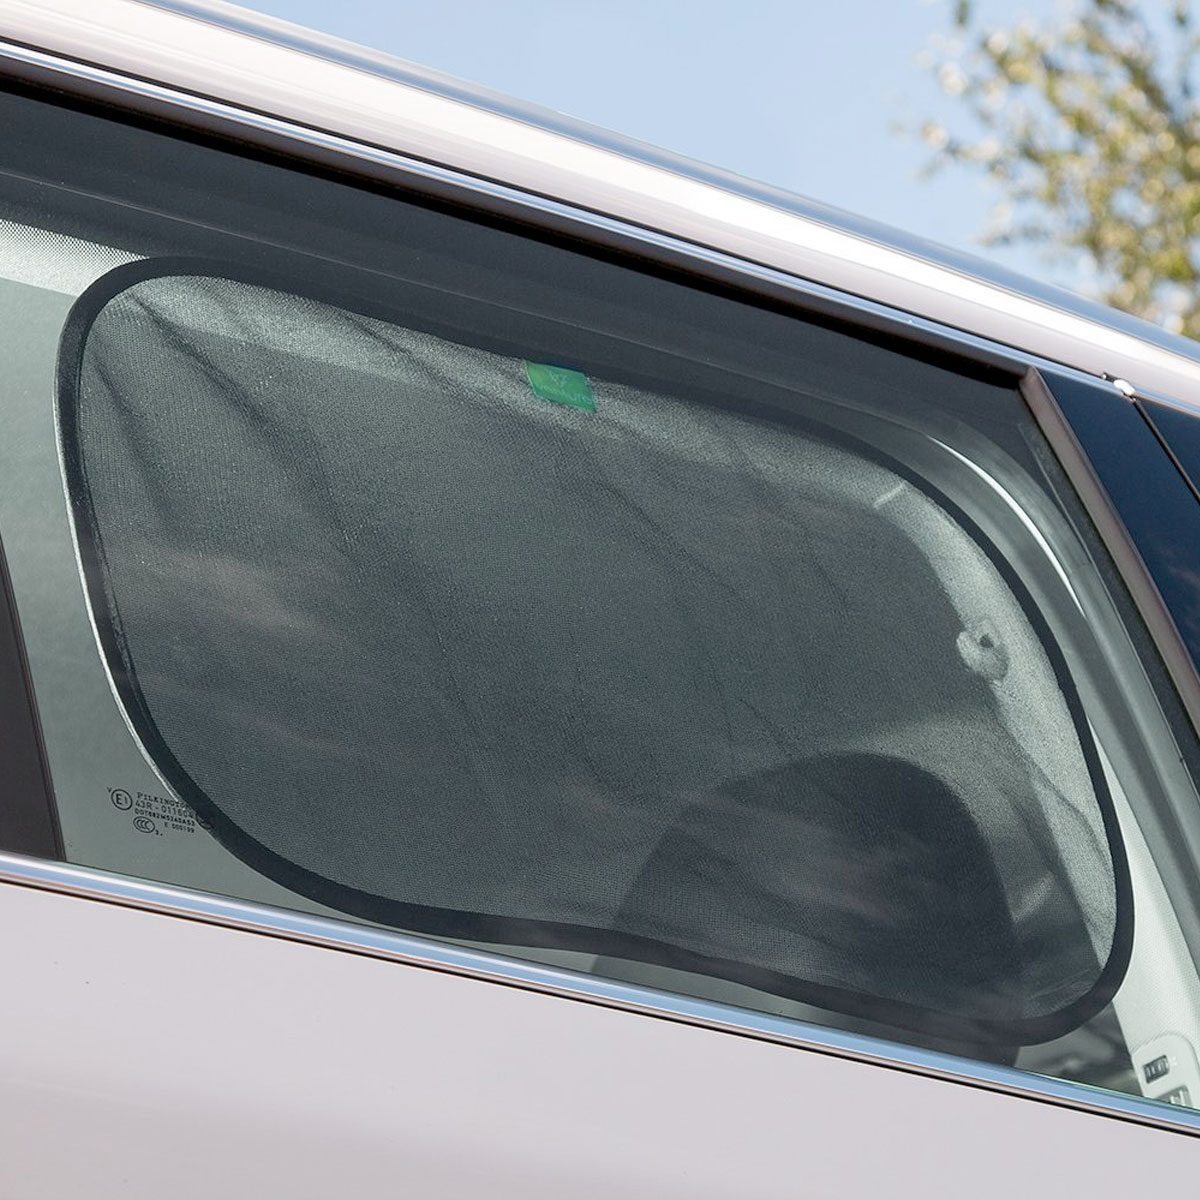 Simply wipe your hand over the sunshade to fix to the window